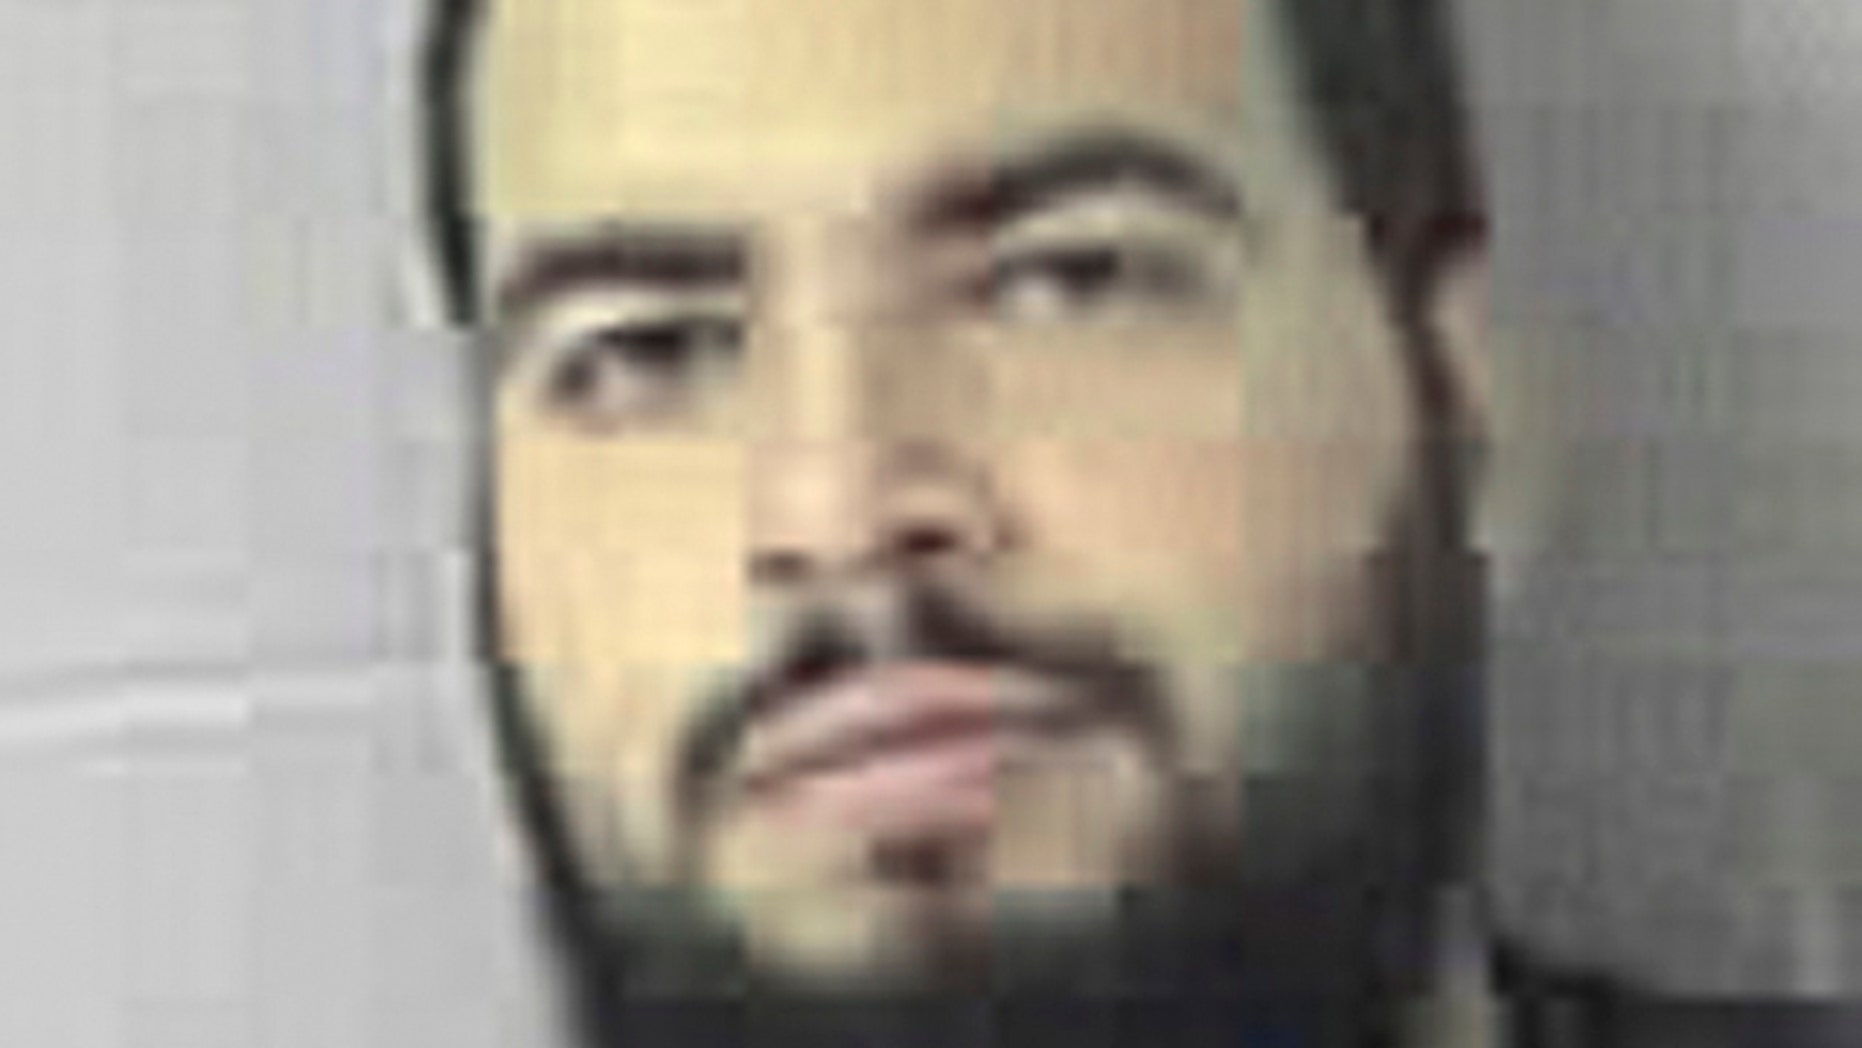 FILE - This Oct. 21, 2009, file booking photo provided by the Sudbury, Mass., Police Dept. shows Tarek Mehanna, of Sudbury, who was convicted of conspiring to help Al Qaeda.